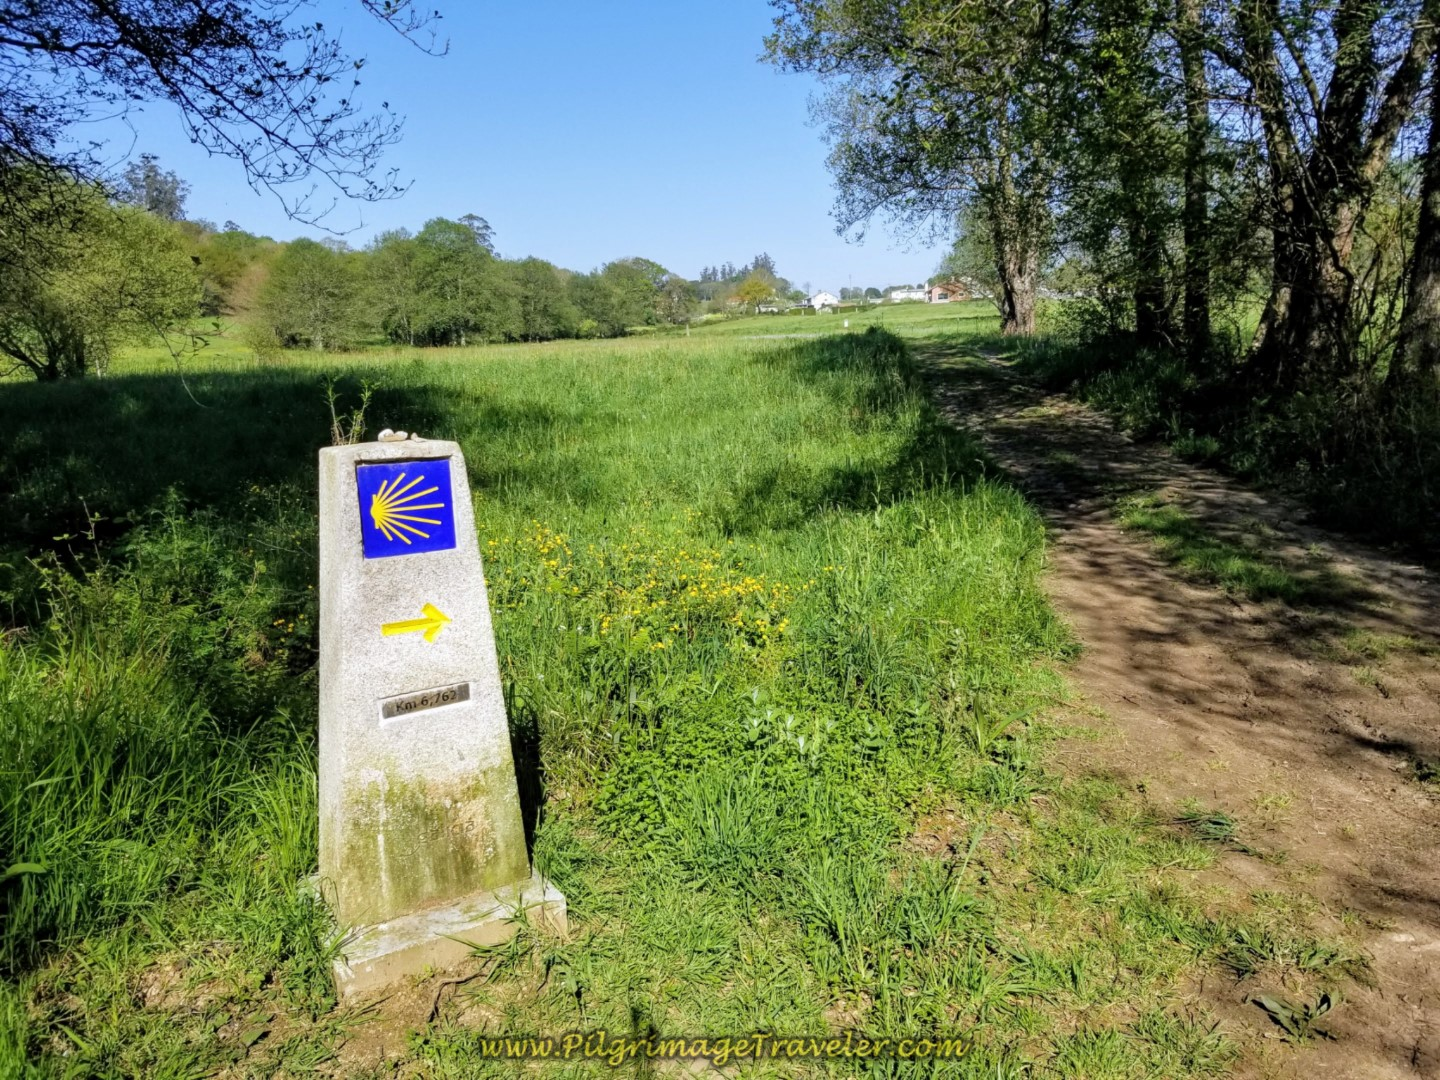 Forest Opens to Fields at 6.76 Kilometer Marker on day eight of the Camino Inglés